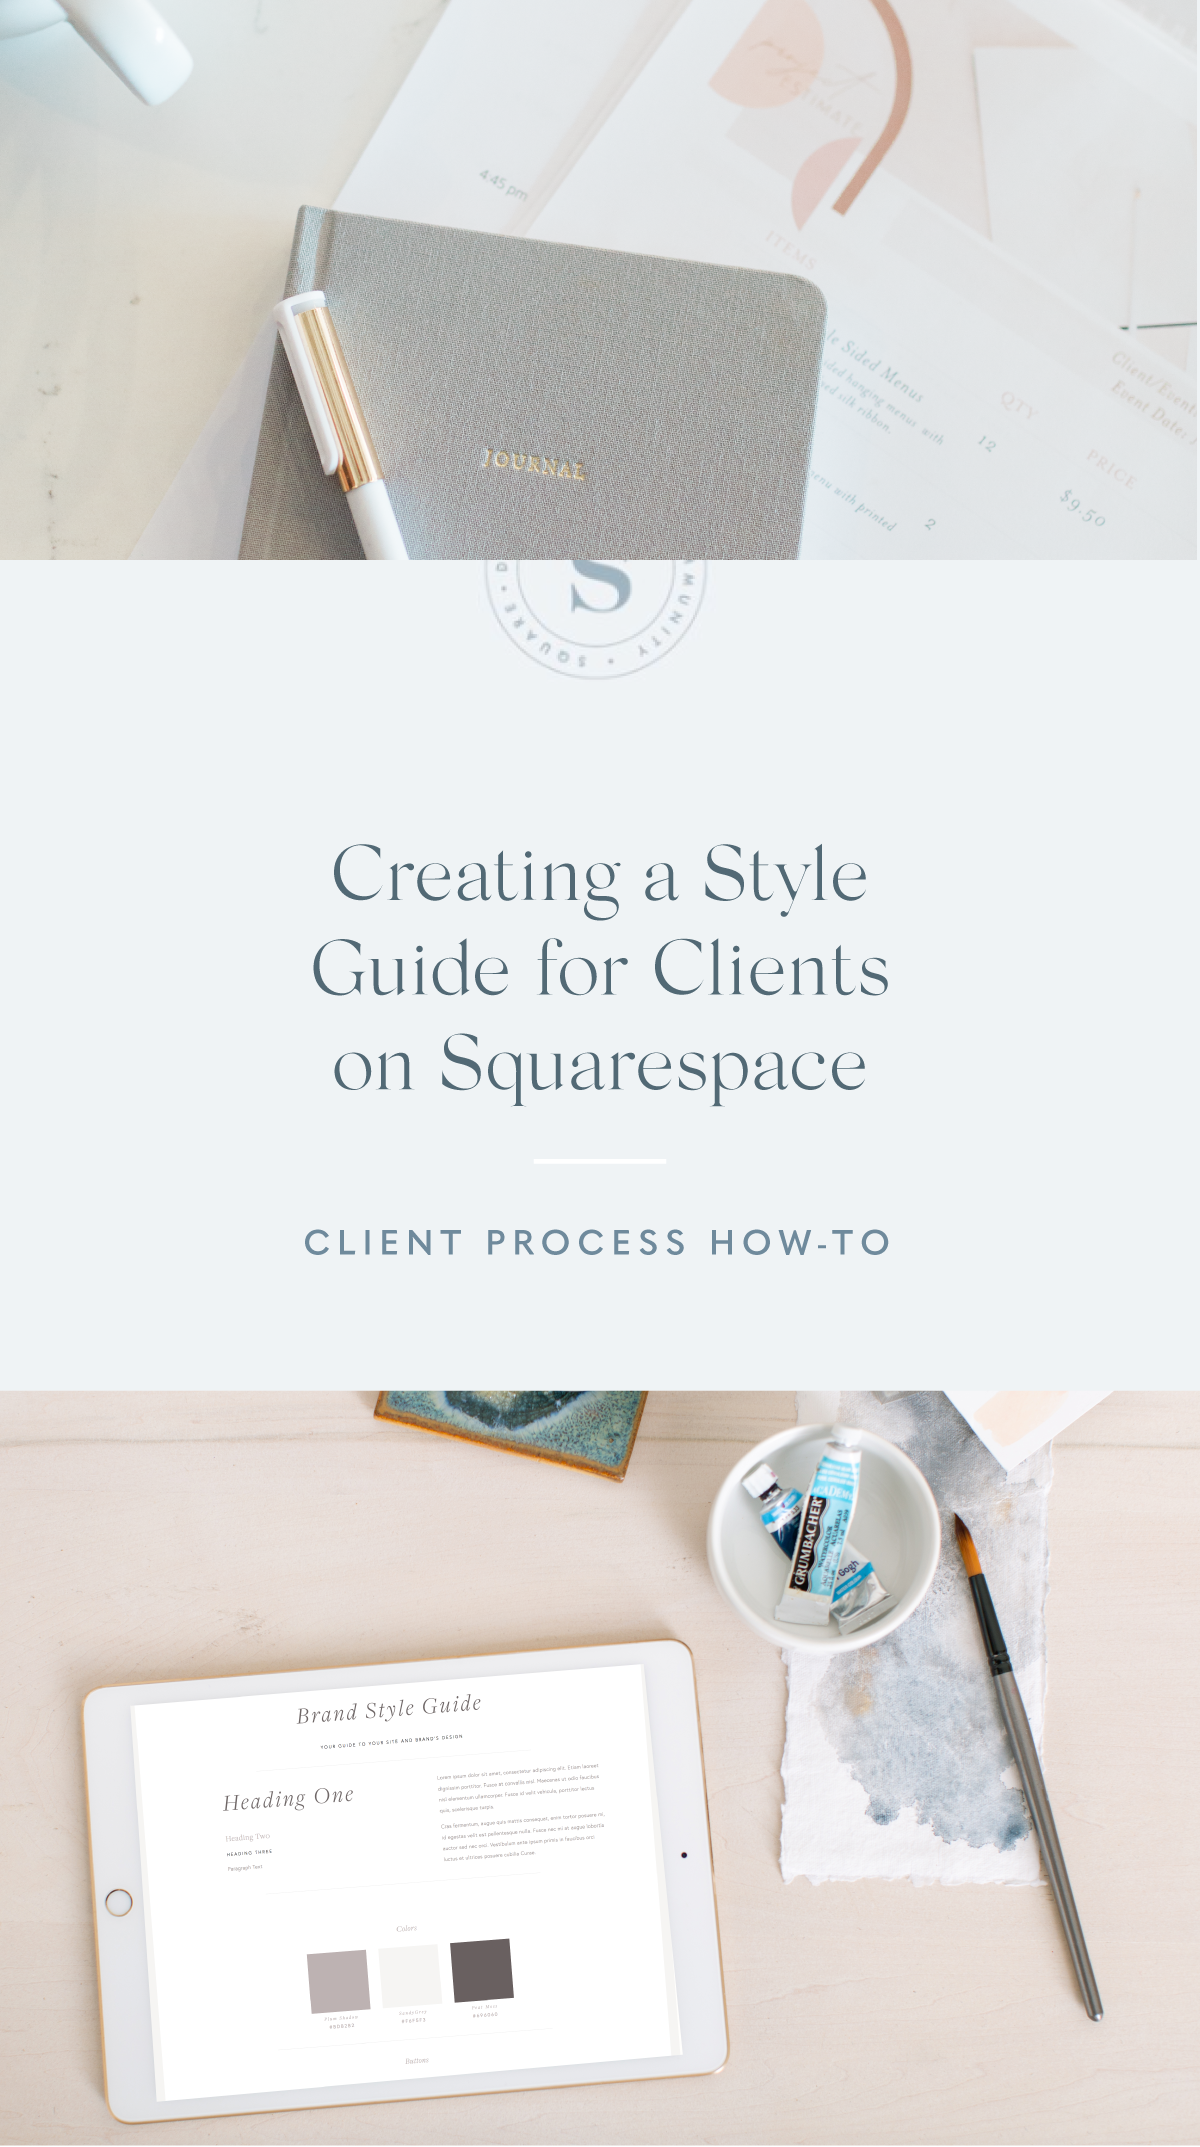 CecilyCreating a Style Guide for Squarespace Web Clients.png